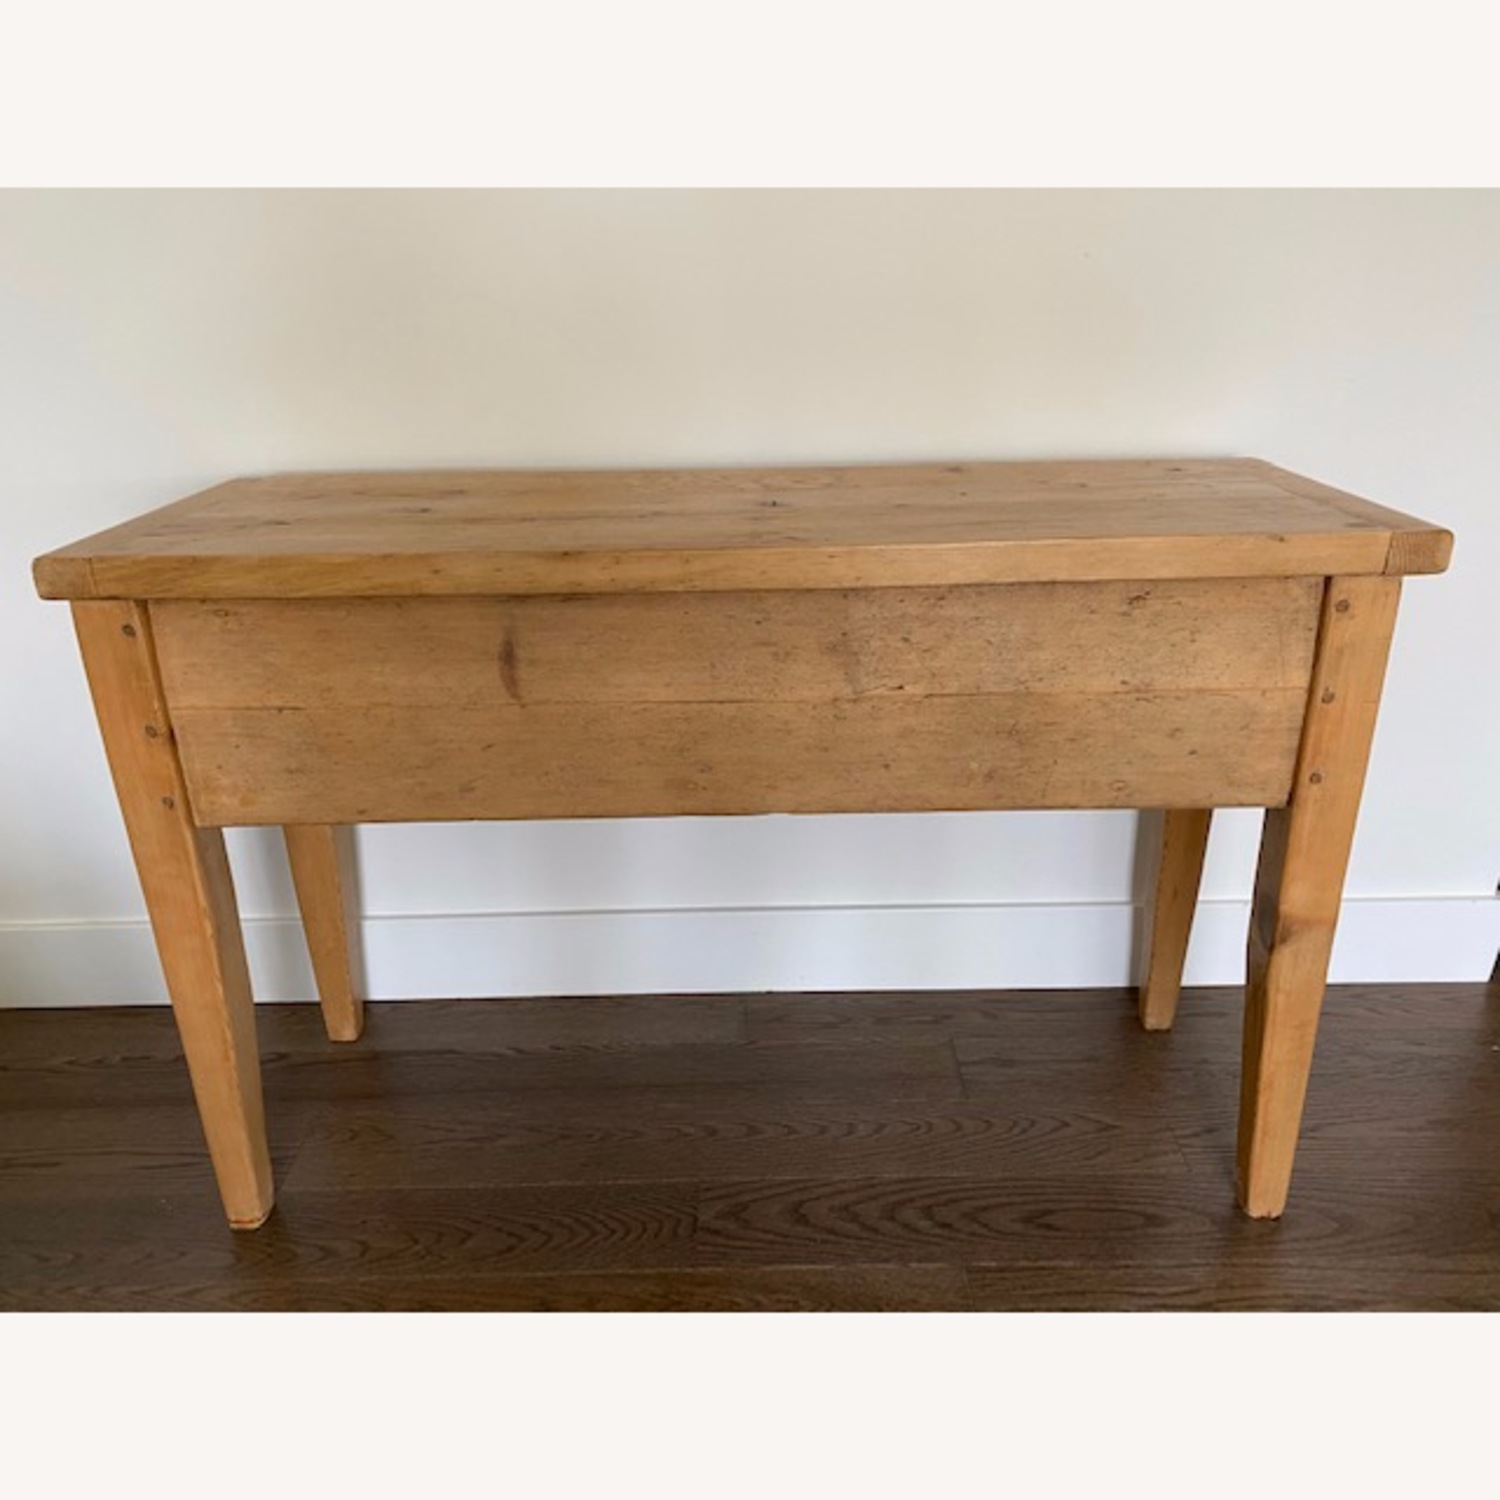 Vintage Pine Console Table with Drawers - image-2